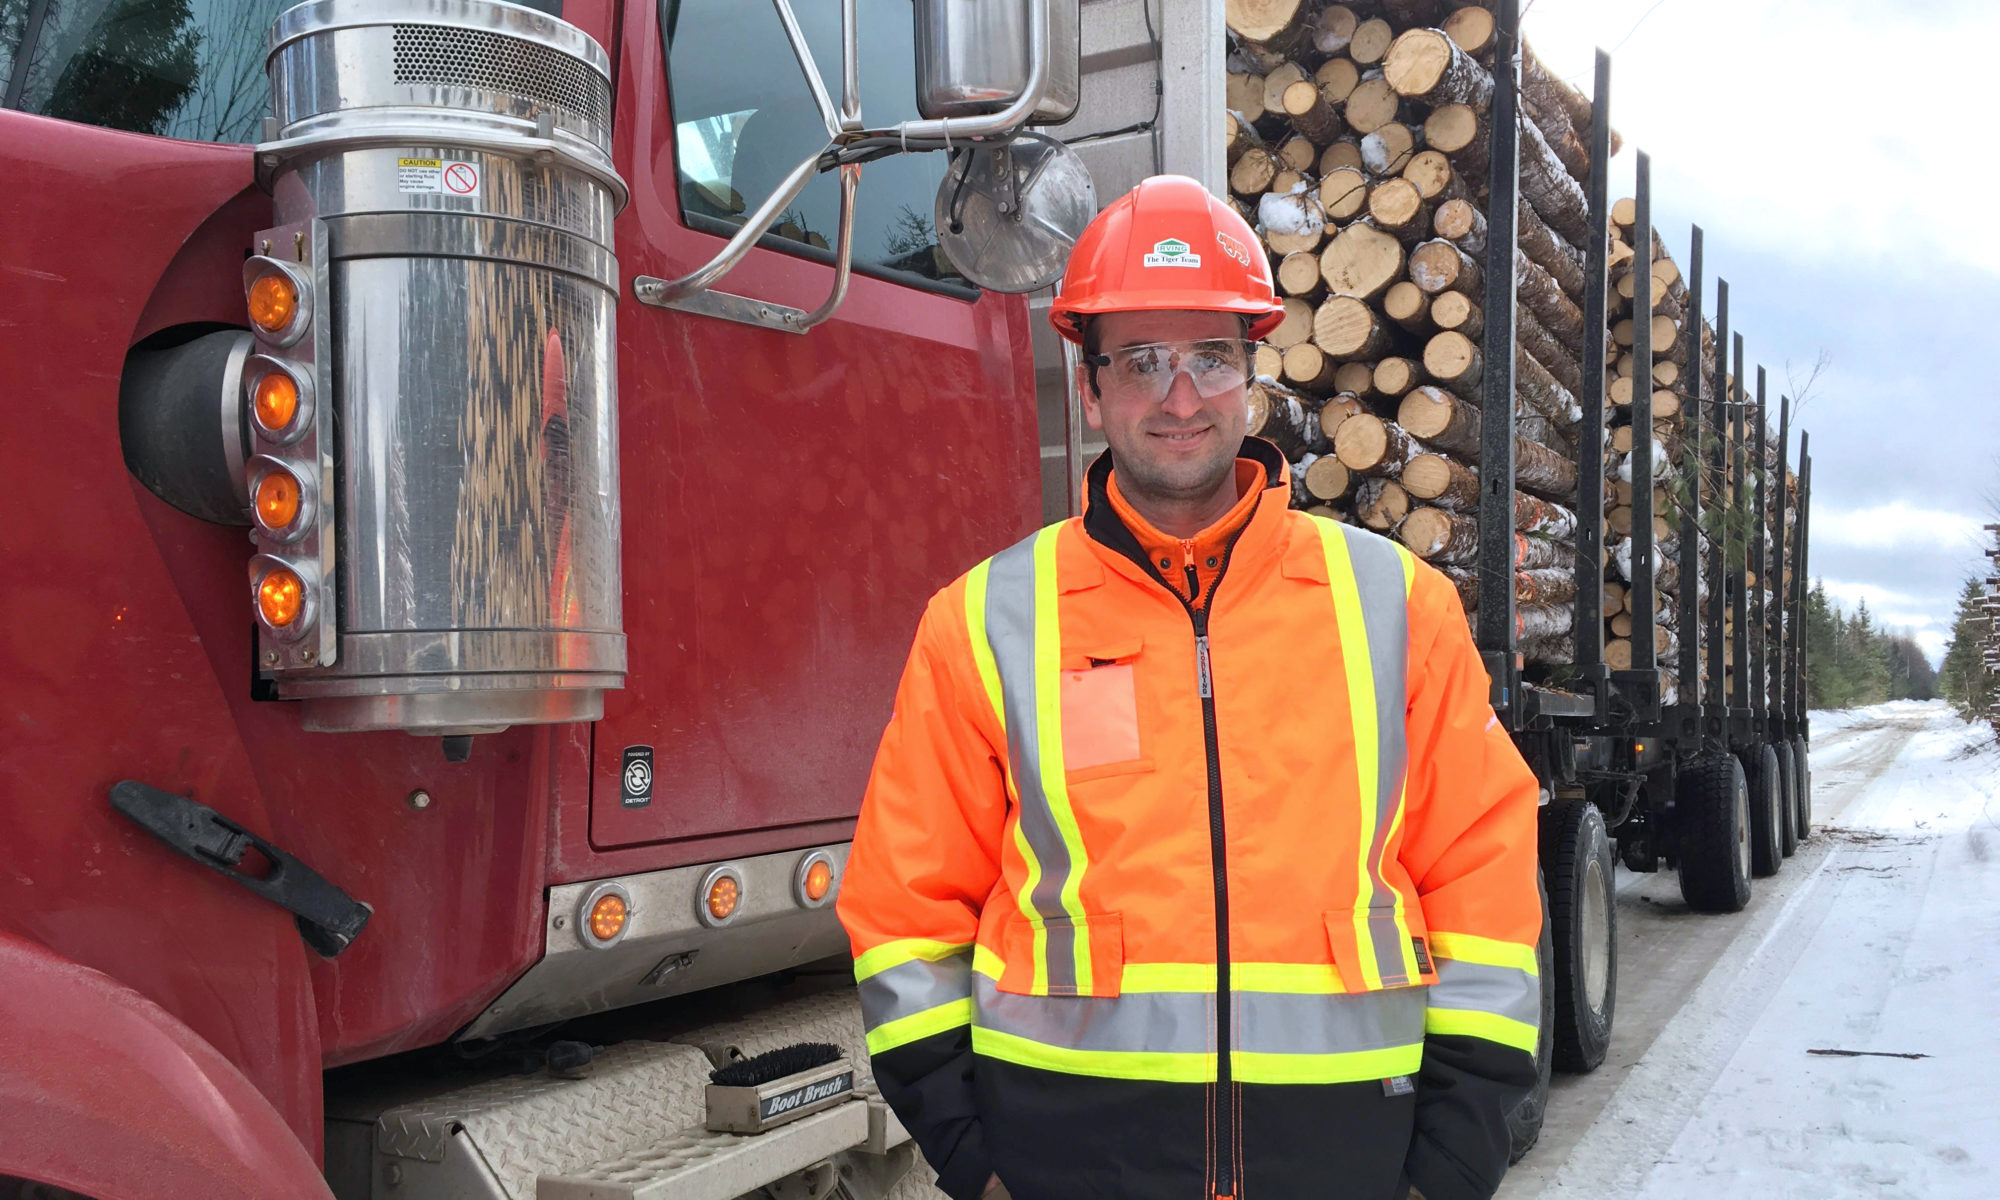 Ukrainian Taras Tovstiy works as a trucker in Chipman, N.B. for J.D. Irving forestry operations.